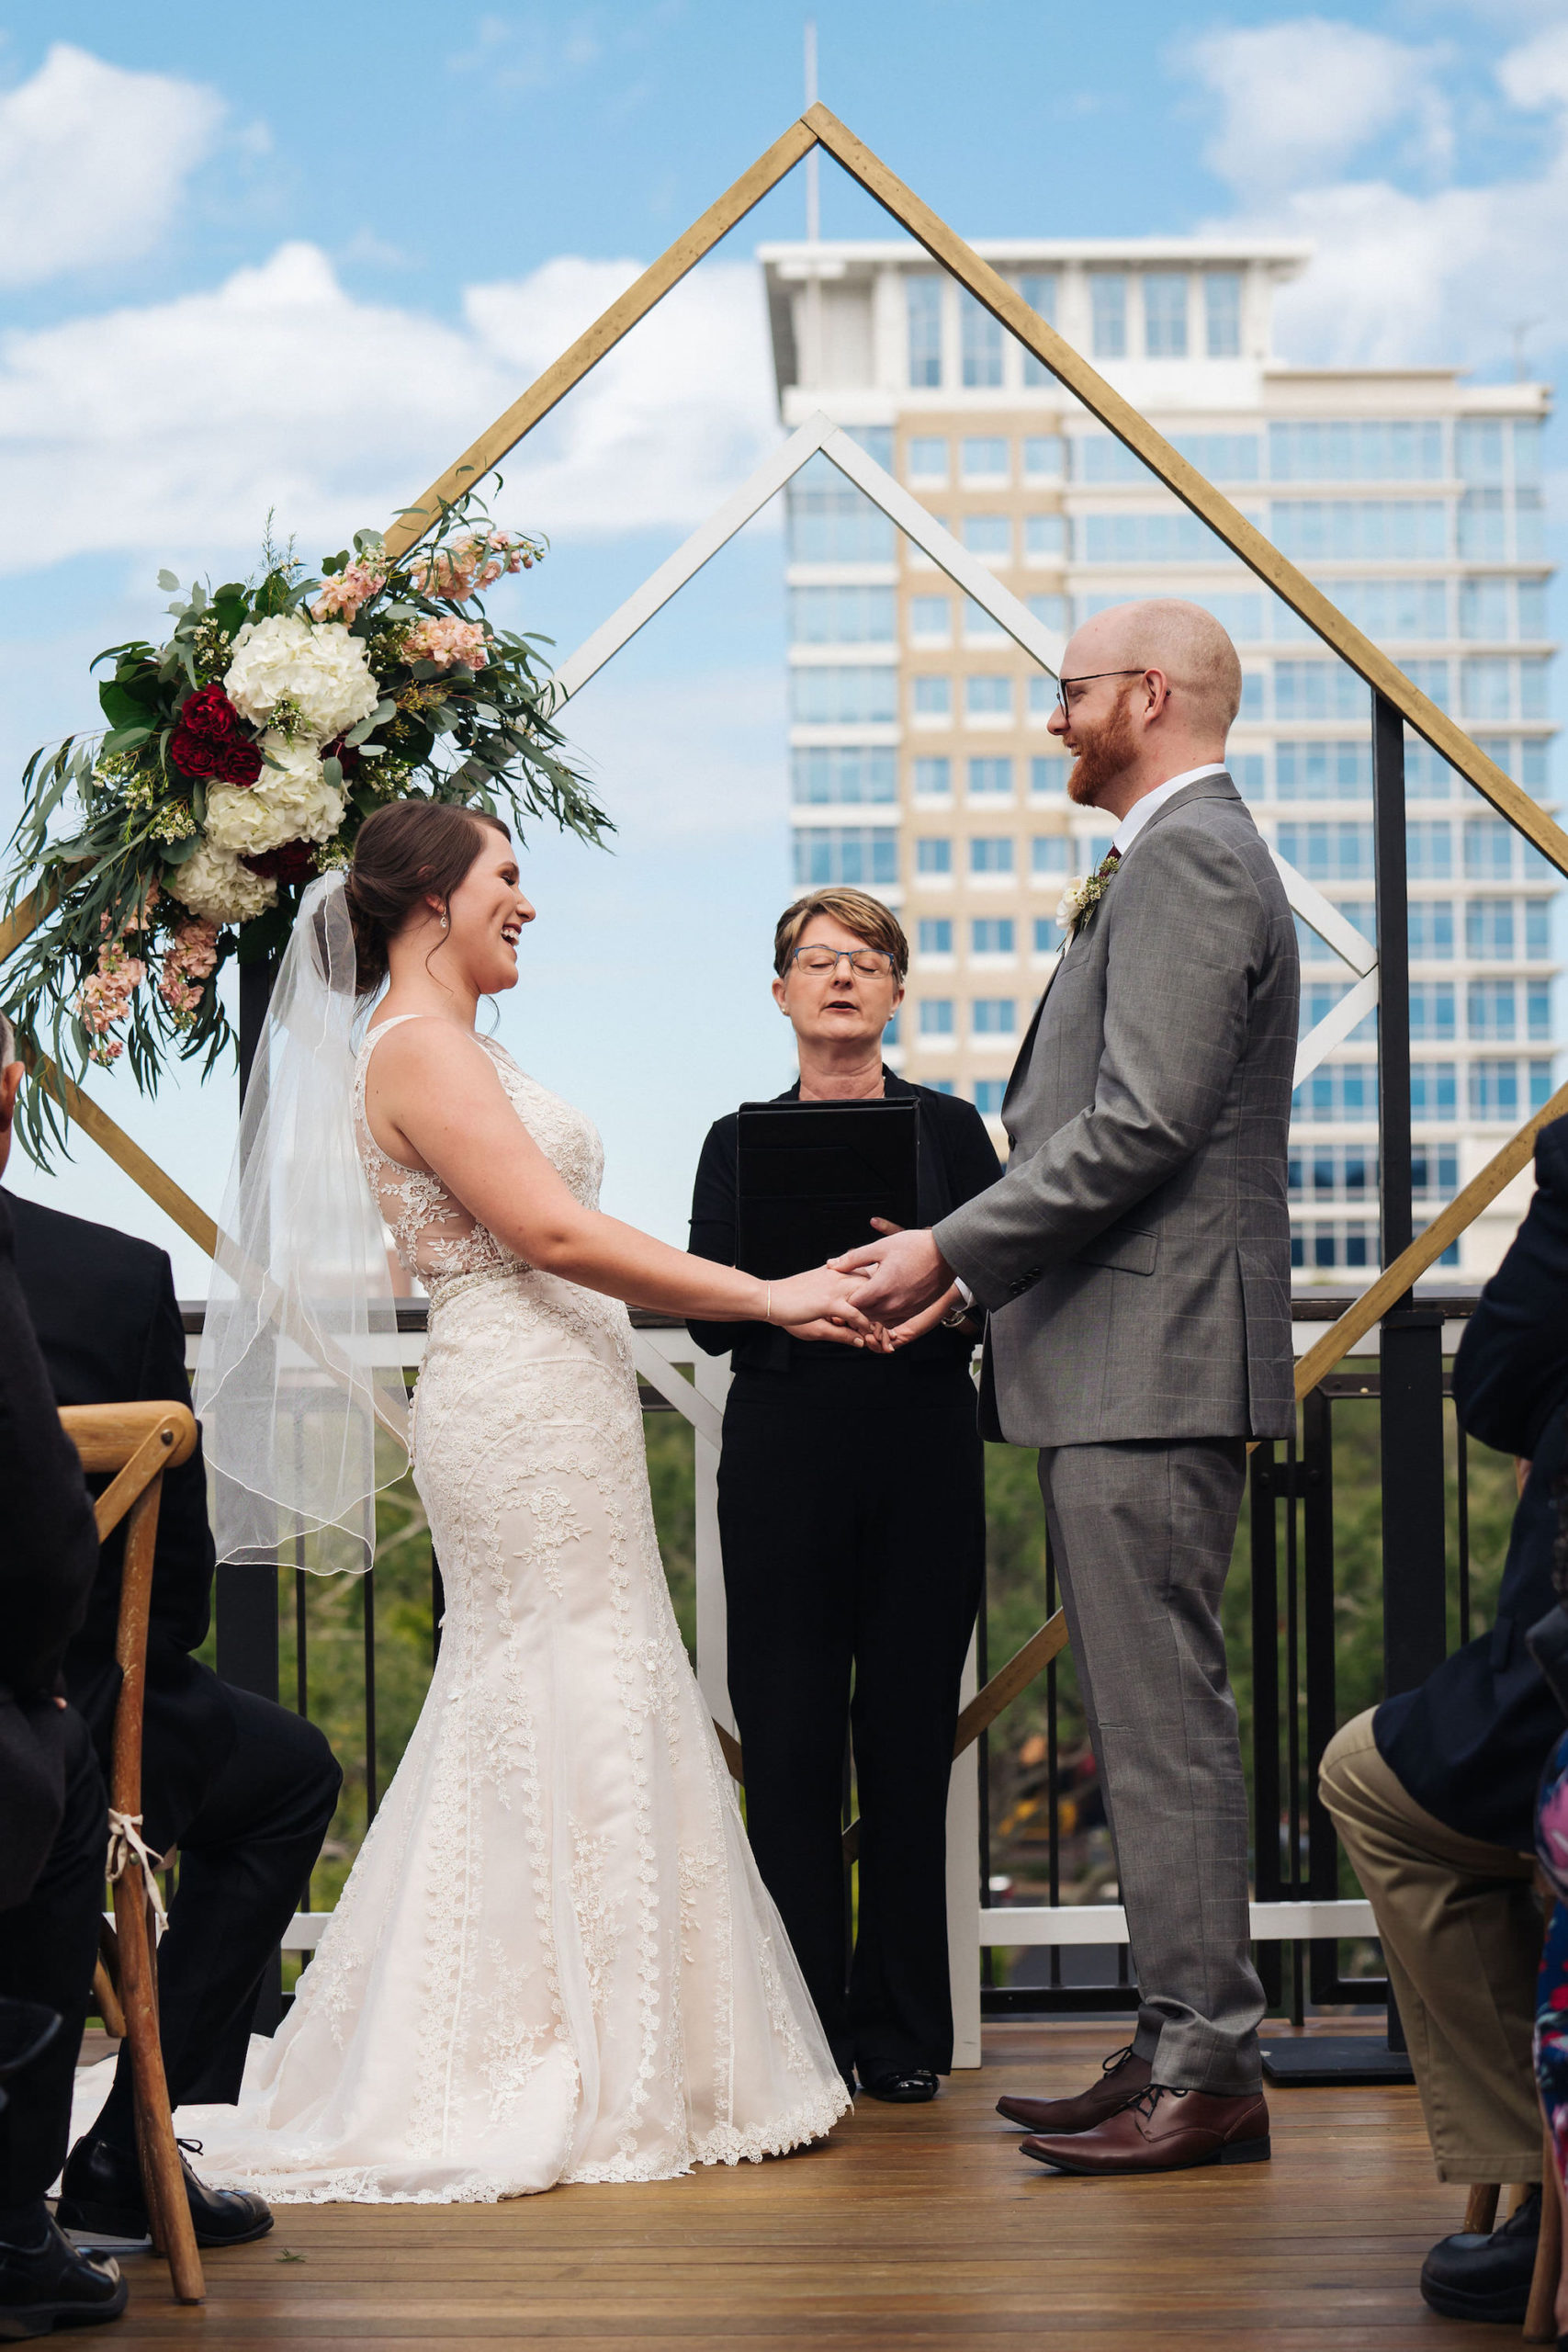 St. Petersburg Florida Wedding Venue   St. Pete Red Mesa Events   Rooftop Geometric Gold Ceremony Arch Backdrop   Lace Bridal Gown   Groom Grey Suit